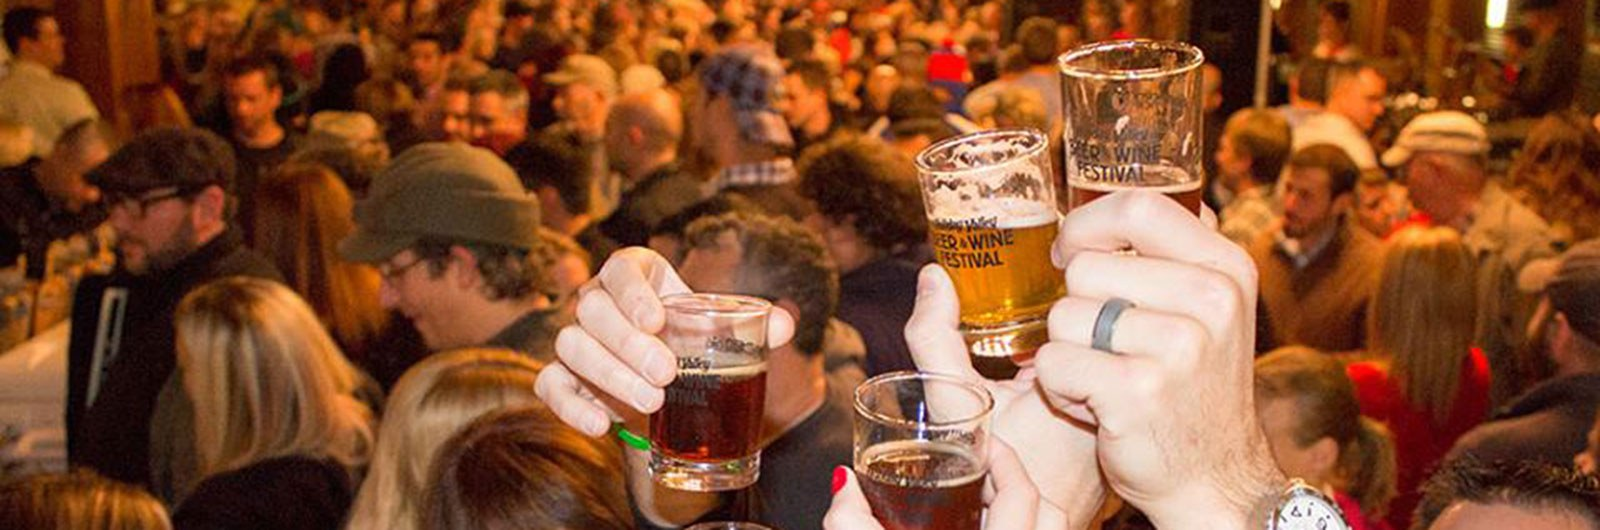 crowd raising glasses at beer and wine festival